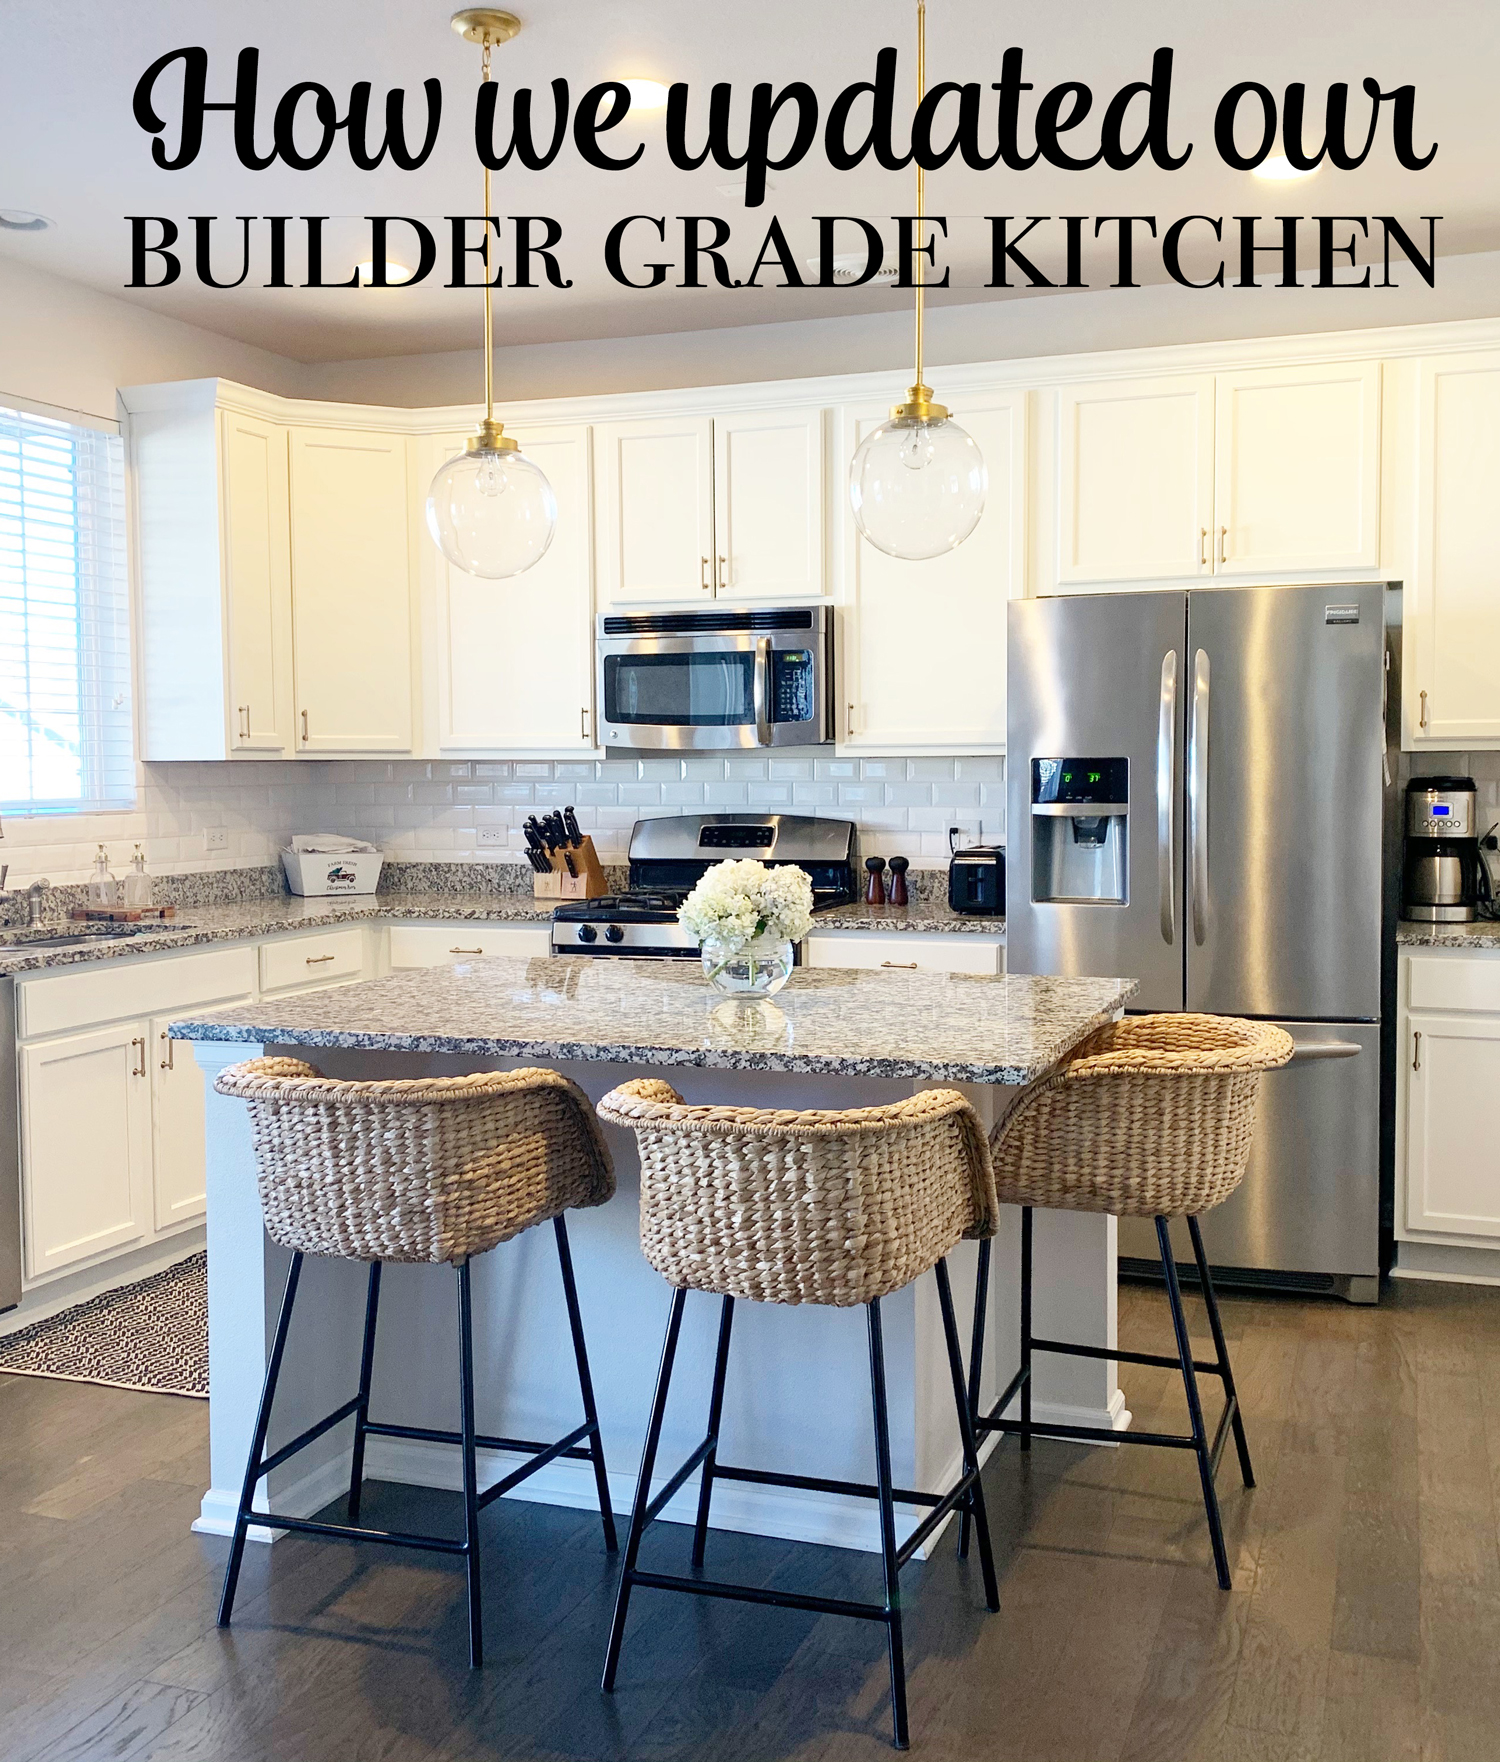 How we upgraded our builder kitchen